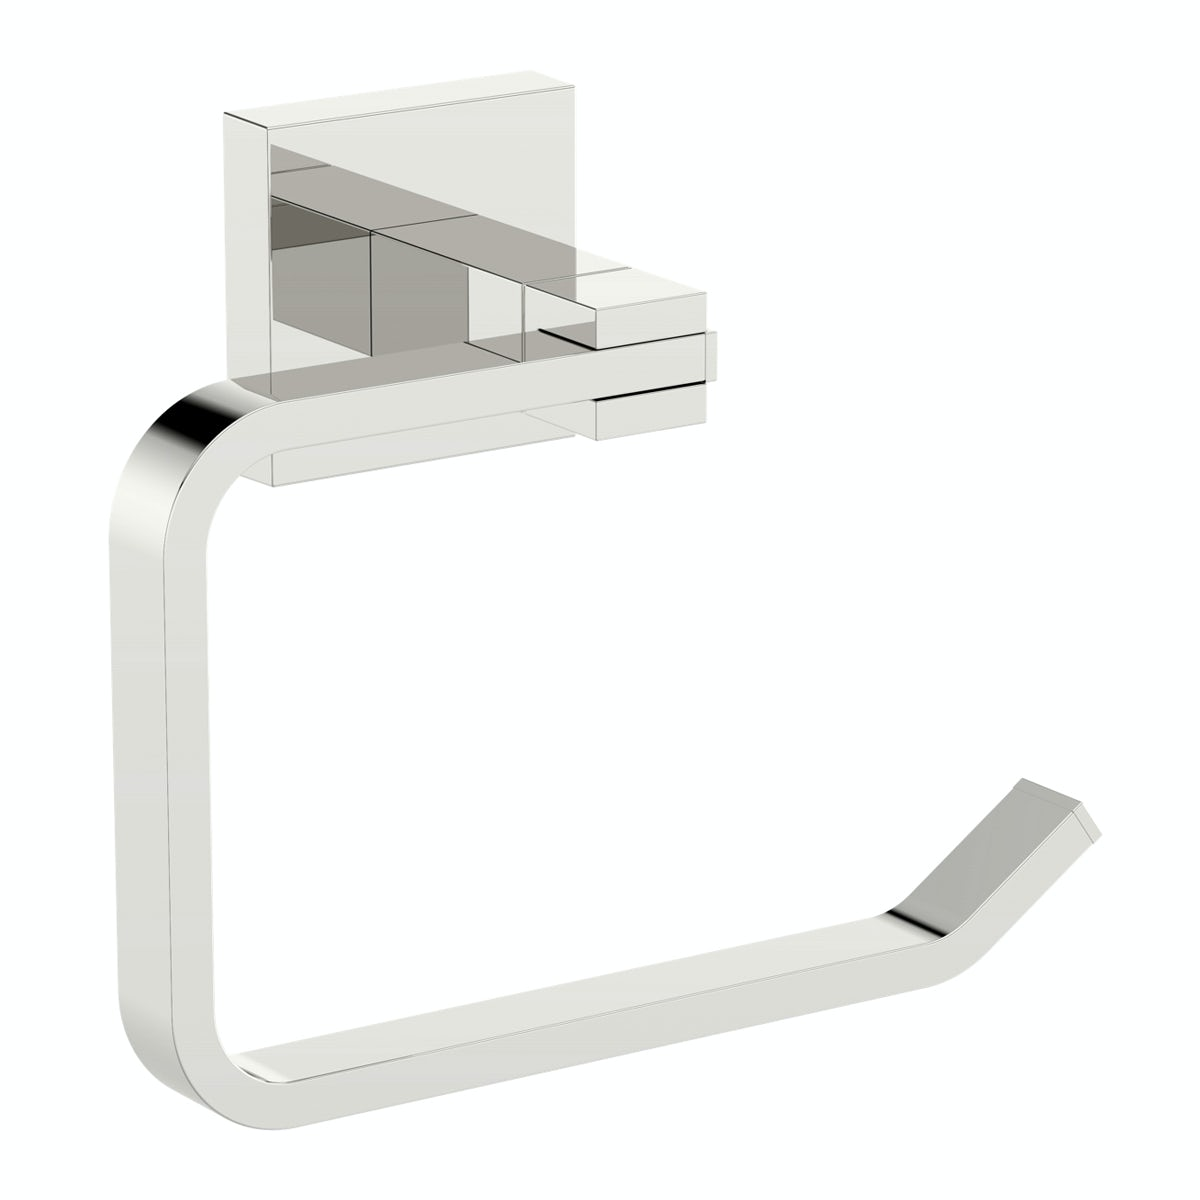 Orchard Flex toilet roll holder